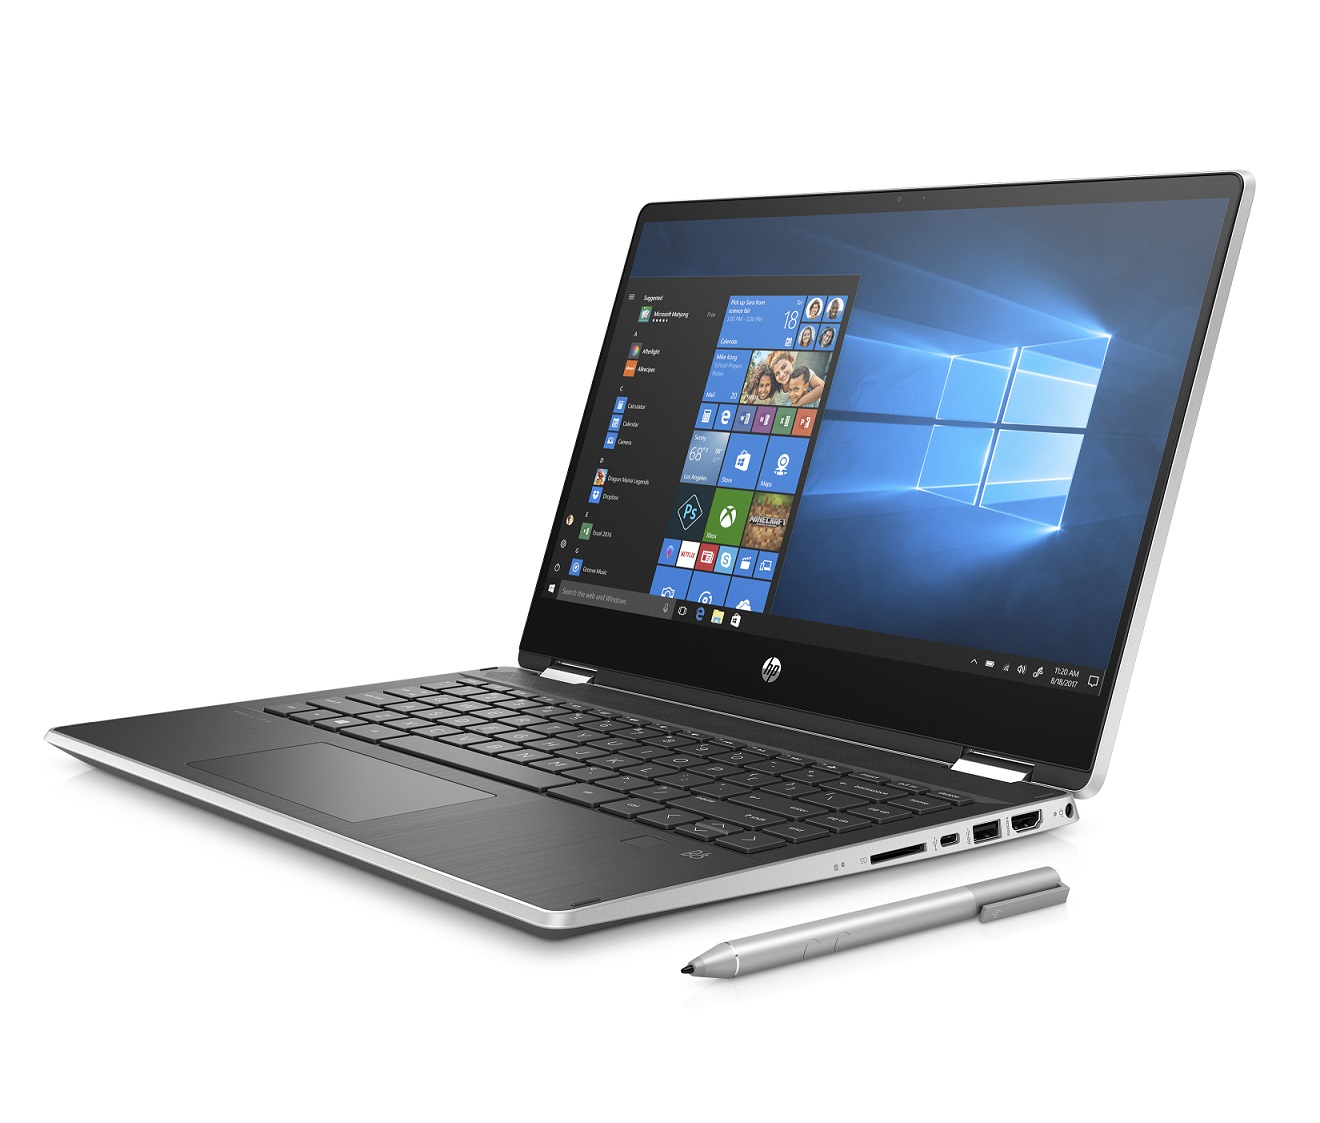 Complete your WFH/LFH set-up with HP laptops